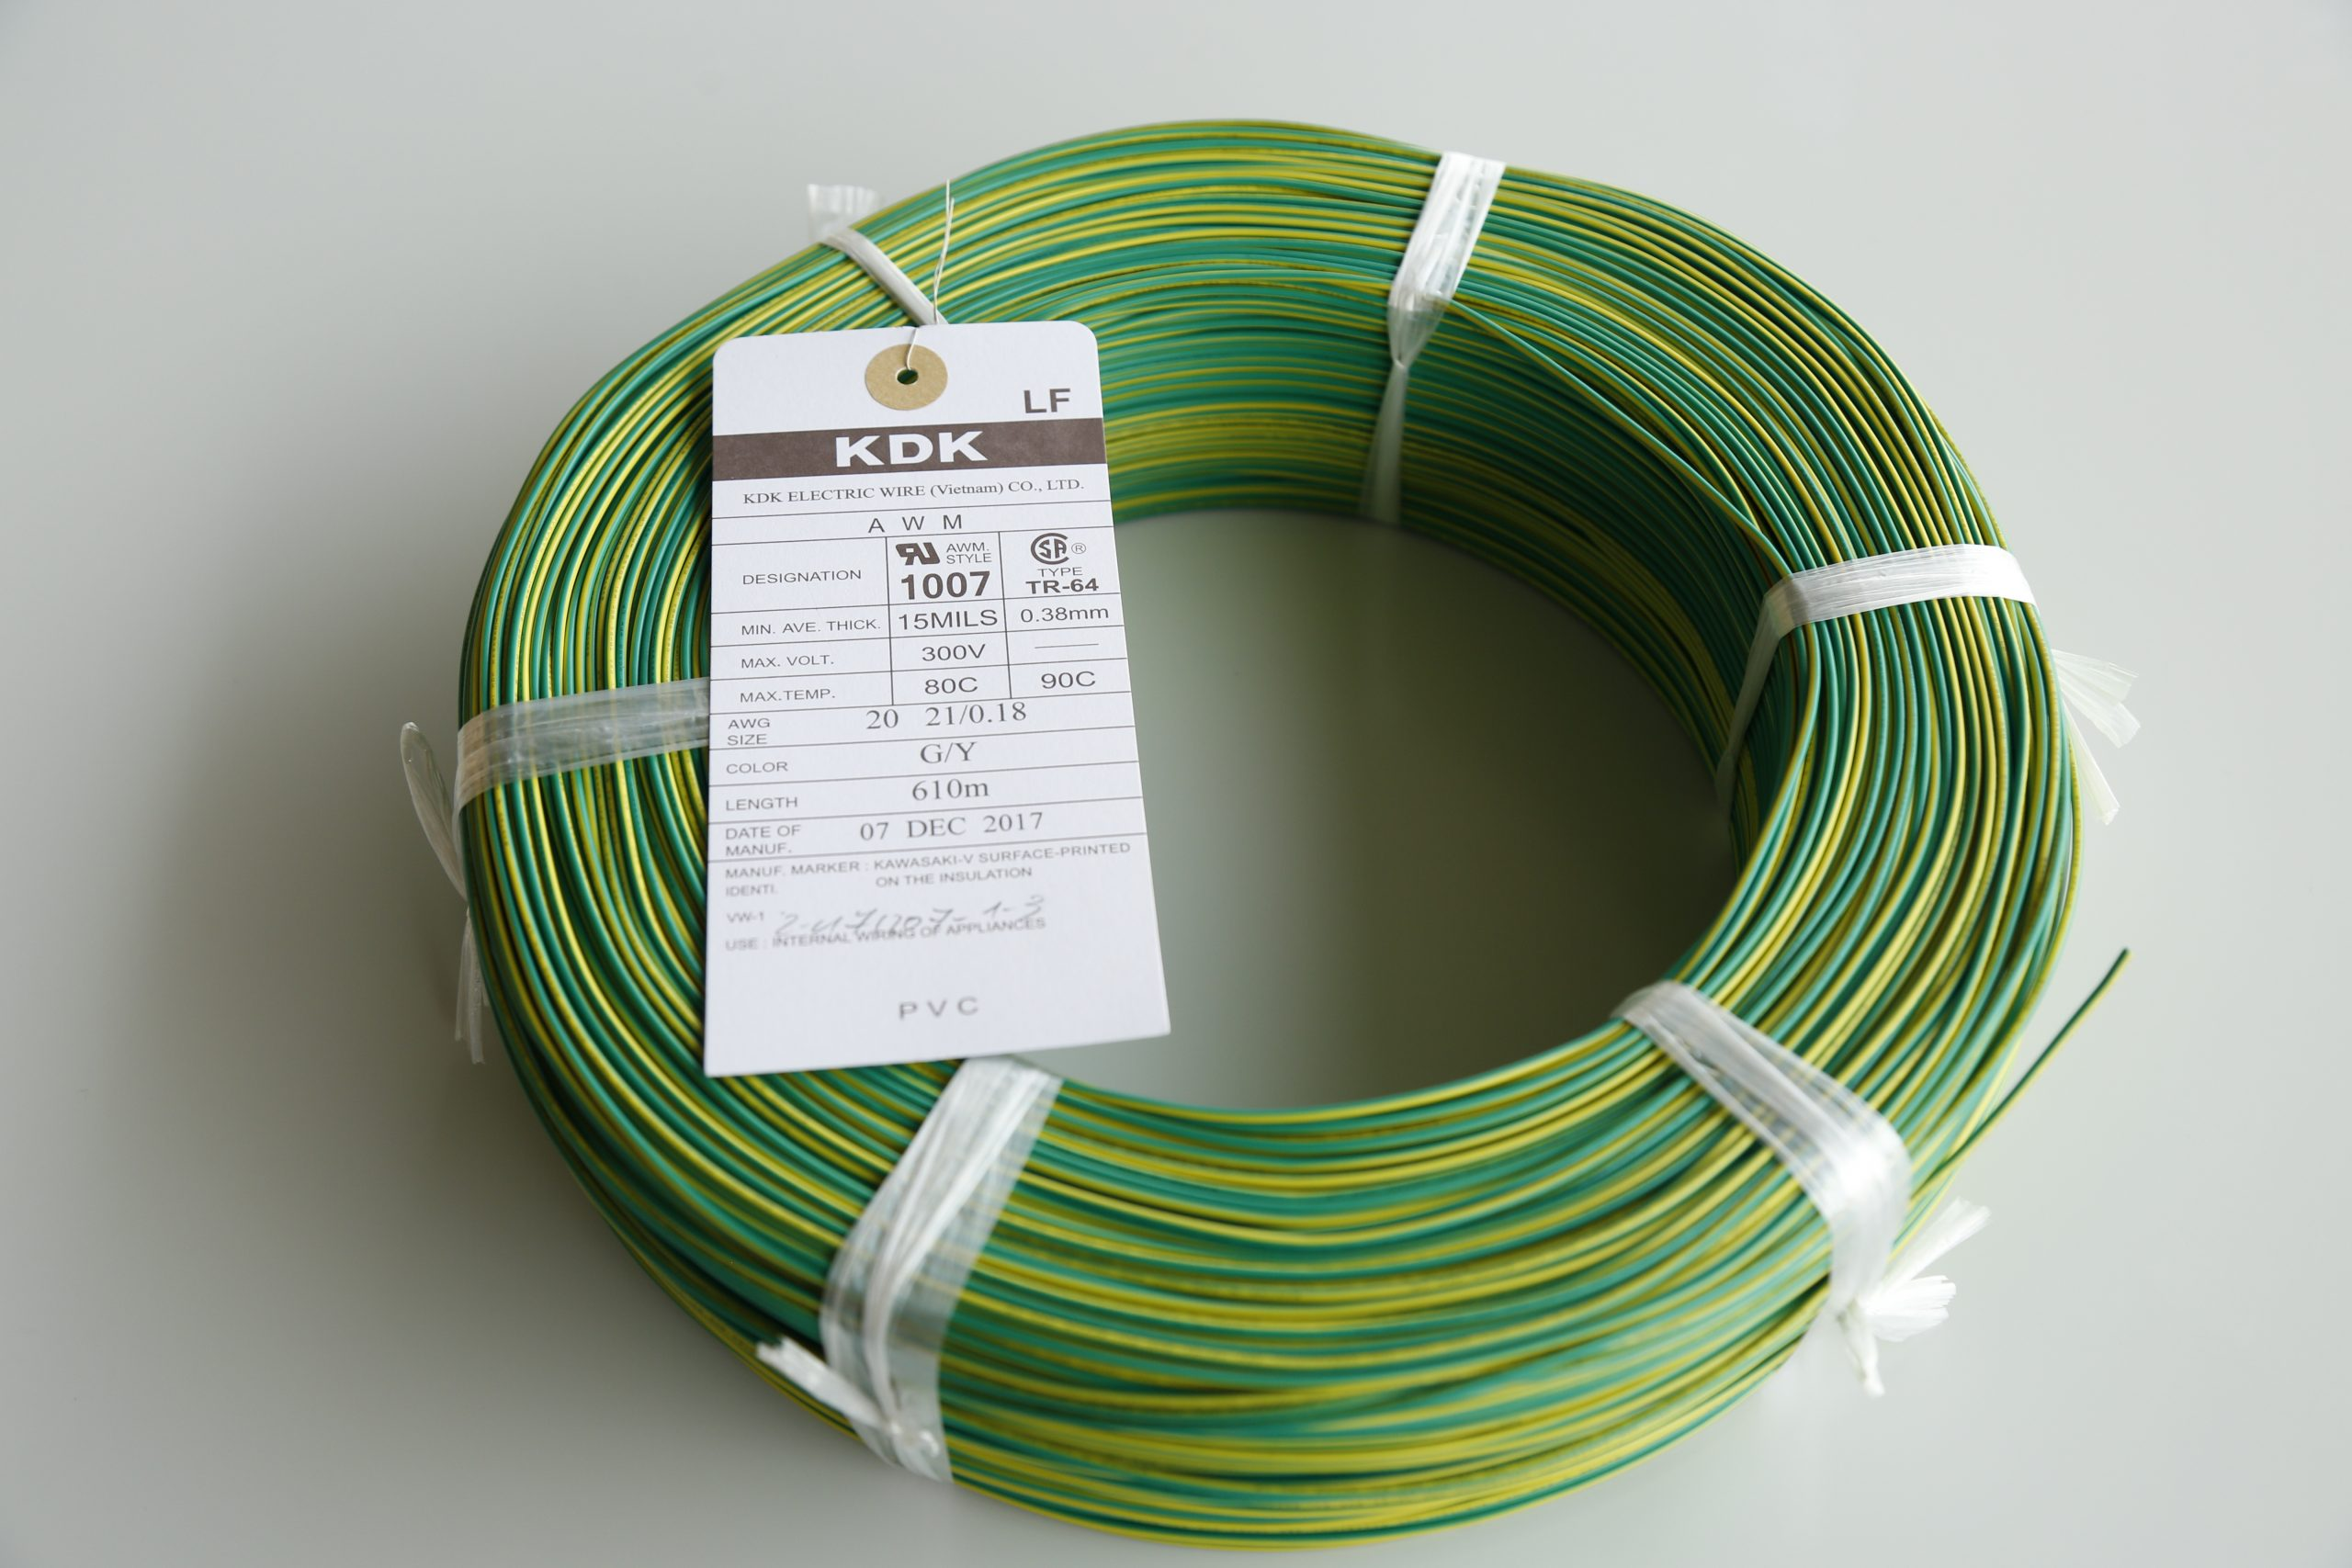 America Usa Canadaul Style 1007 Csa Tr 64 Awg20 Kdk Group Electrical Wiring Colors Canada